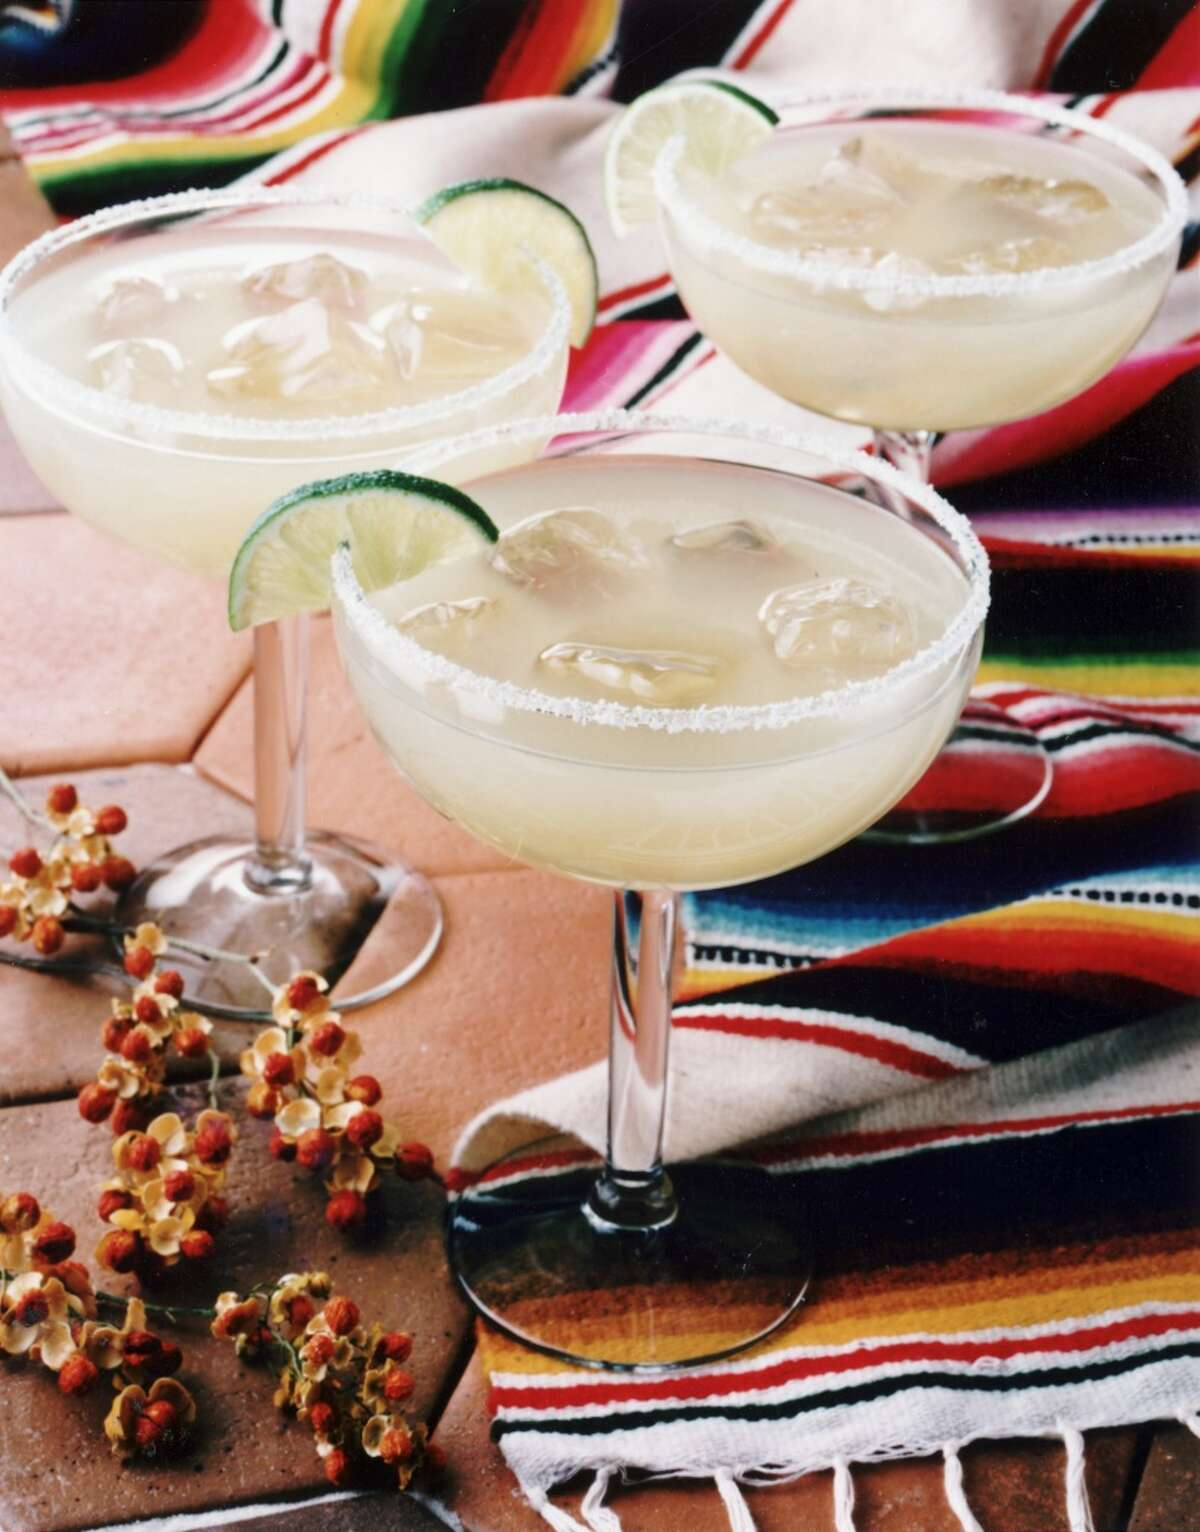 18. Panchito's Mexican Restaurant 4100 McCullough Ave. Suite 1$252,711 in liquor salesPortion of total alcohol sales: 84.9 percent liquor